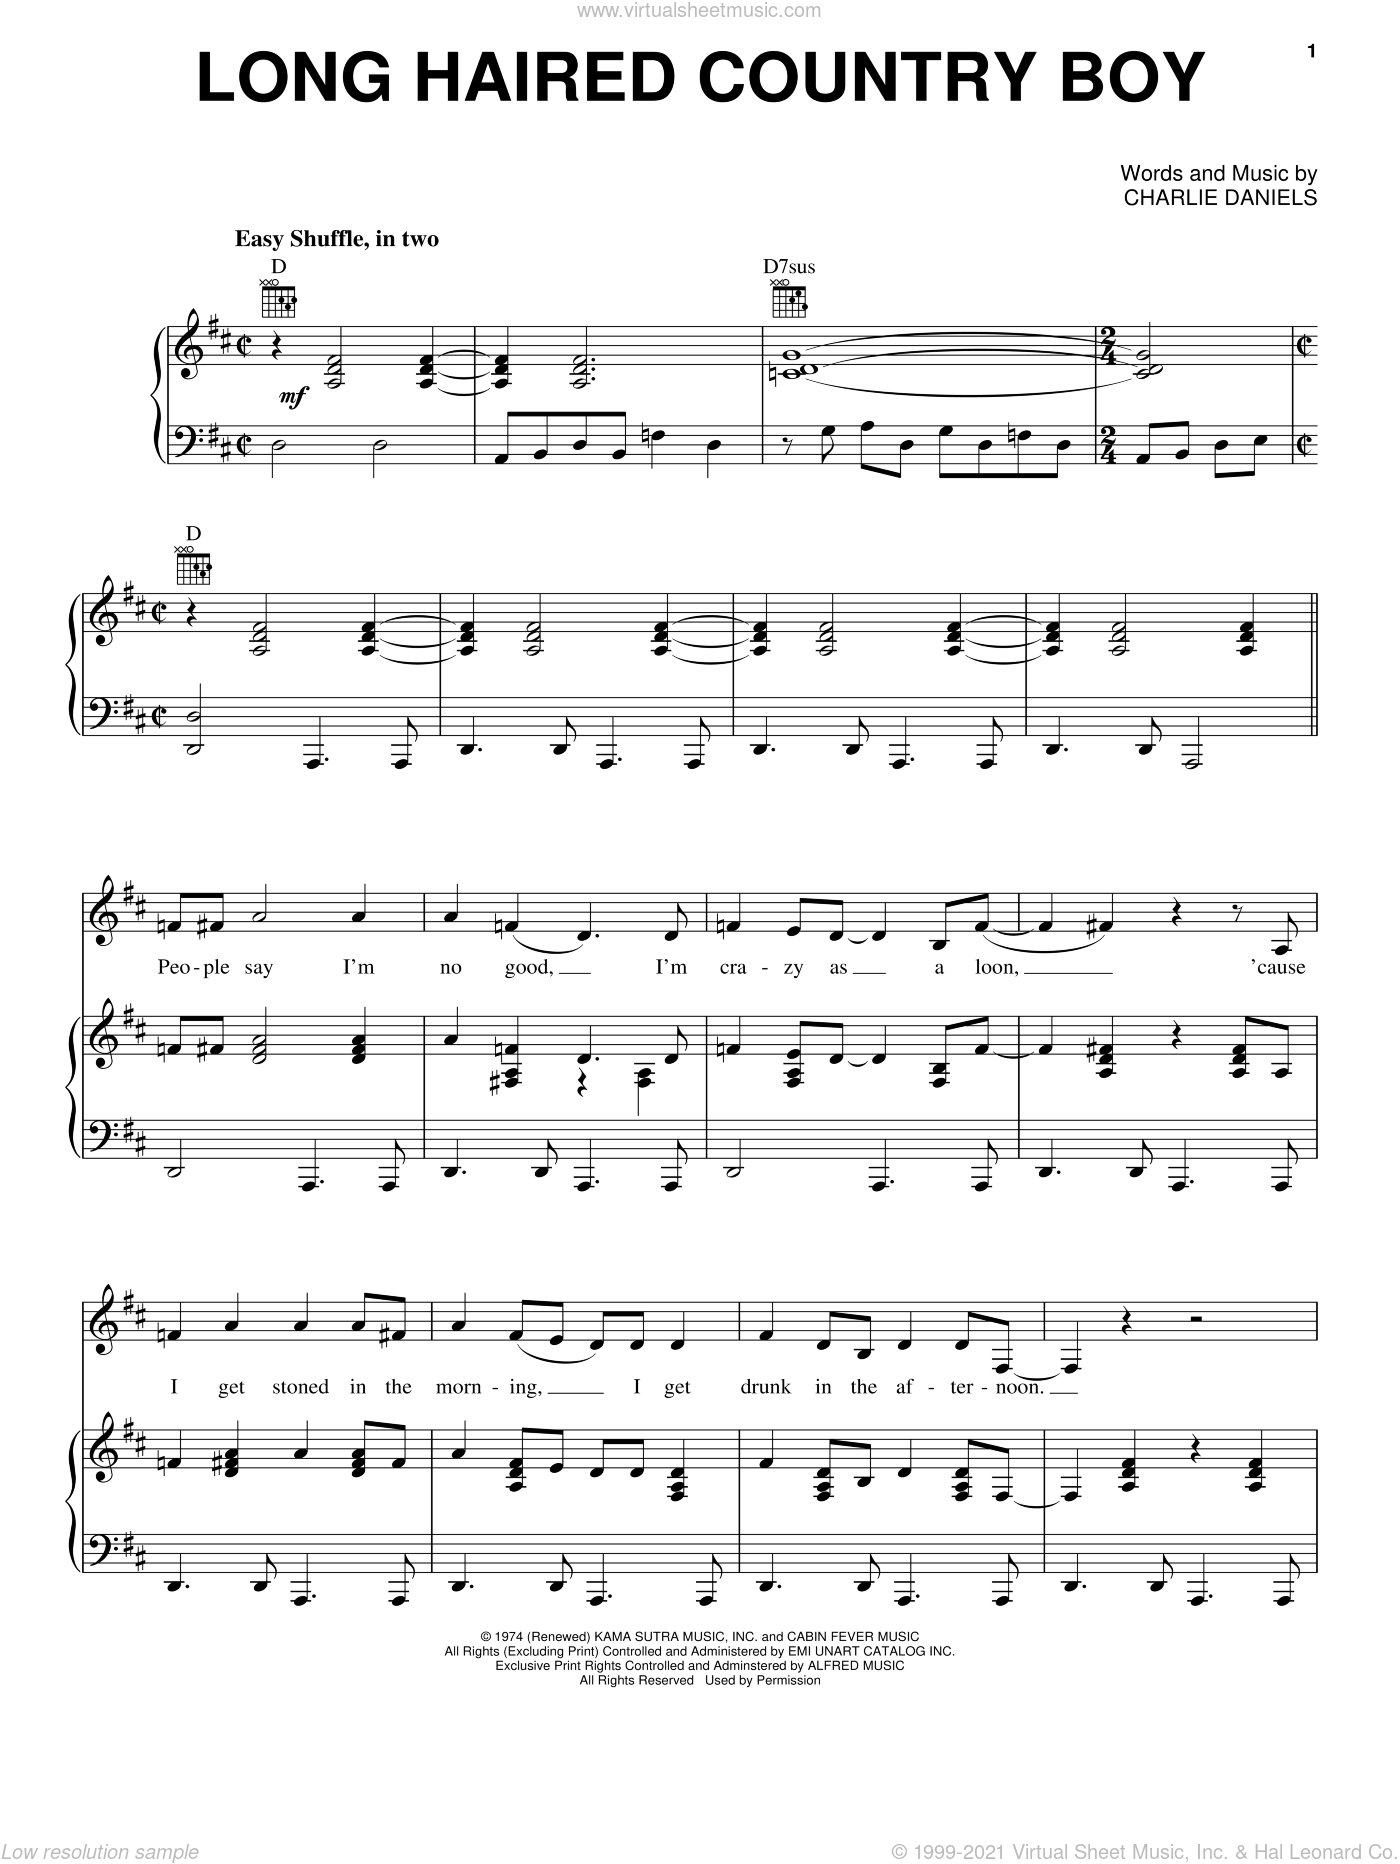 Long Haired Country Boy sheet music for voice, piano or guitar by Charlie Daniels, intermediate skill level